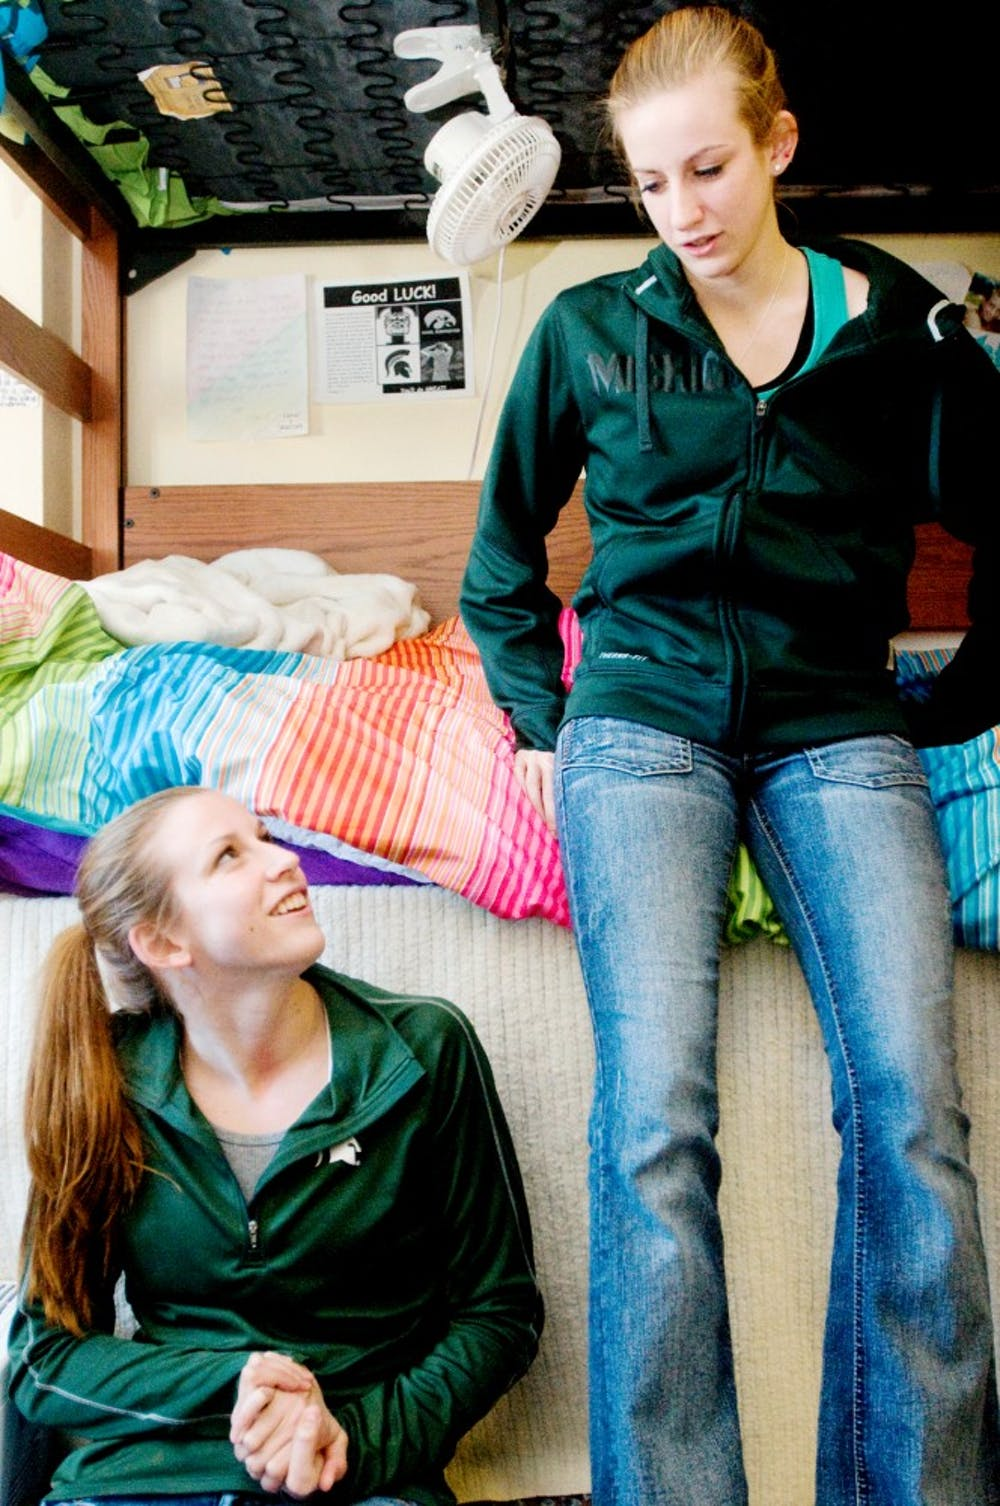 Sophomore dietetics student Erica Cultler, left, and her twin sister sophomore elementary education student Jessica Cutler, right, talk in their dorm room Thursday in Wonders Hall. The twins are on the swimming and diving team at MSU. Jaclyn McNeal/The State News